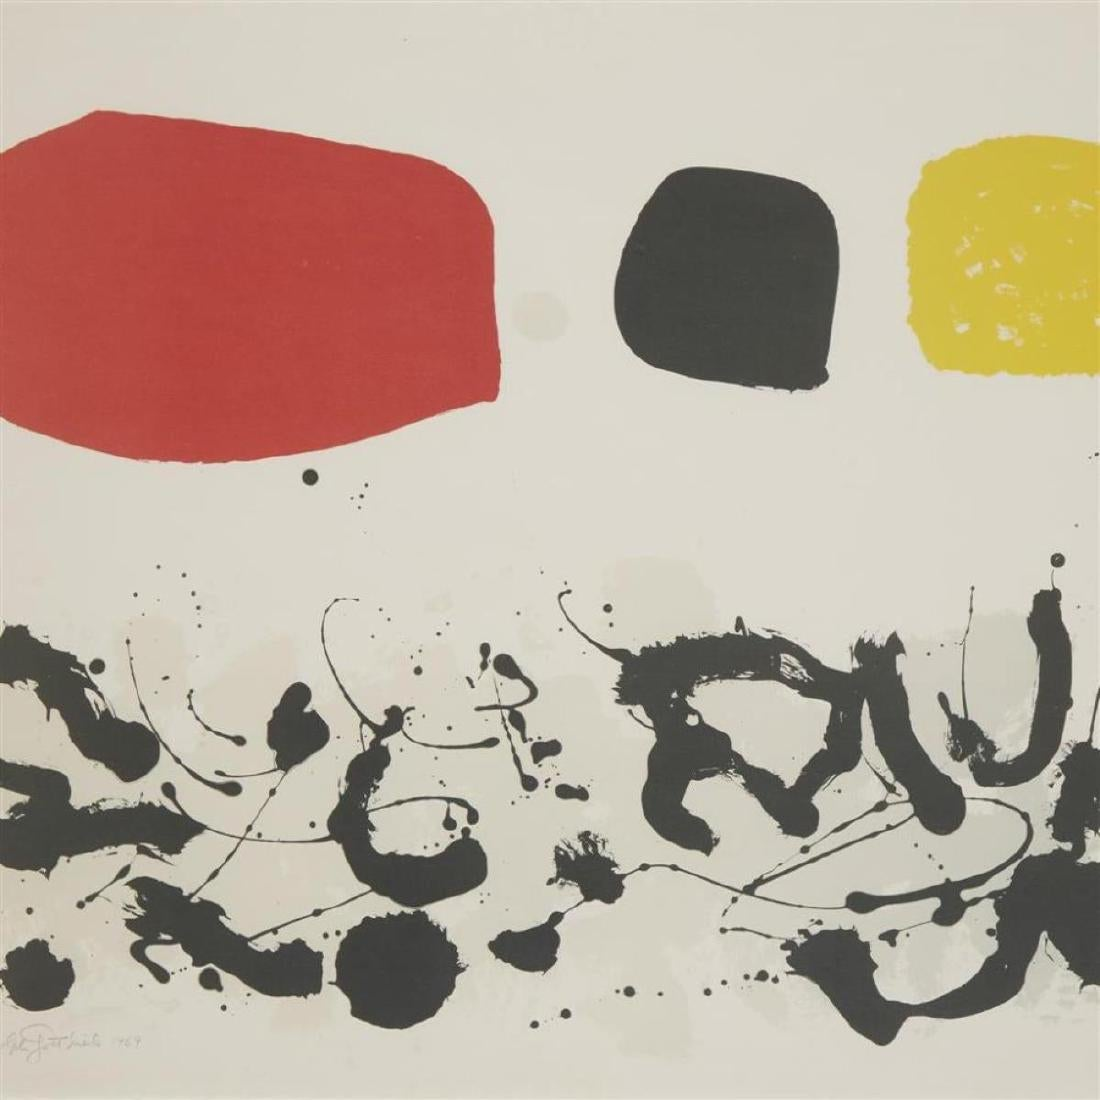 Germination Iii by Adolph Gottlieb